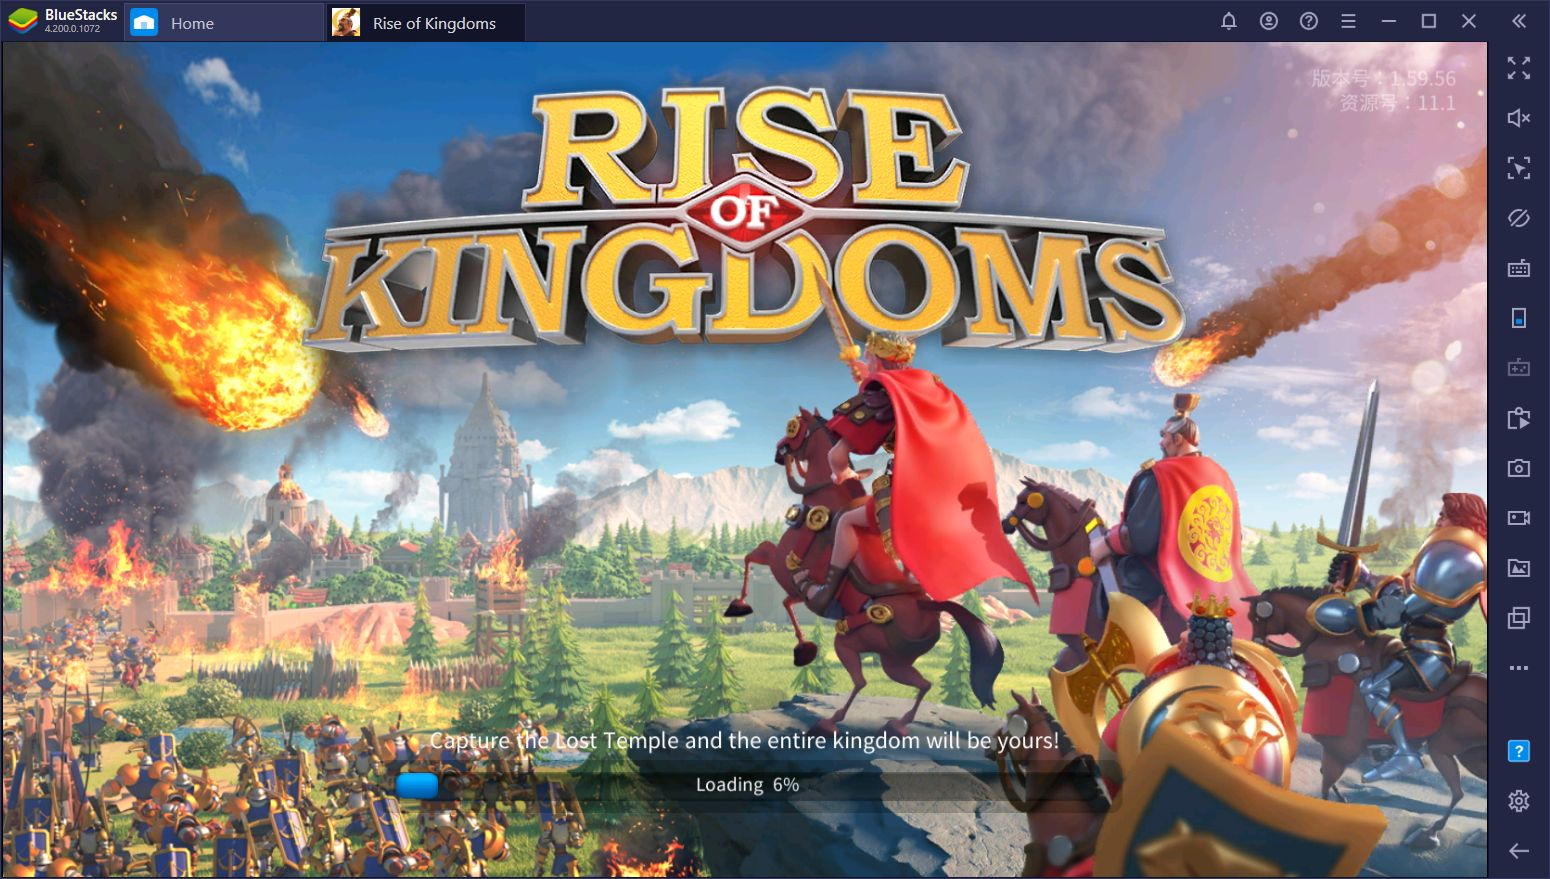 Rise of Kingdoms – Complete Guide to Civilizations, Alliances, Commanders, Military and More